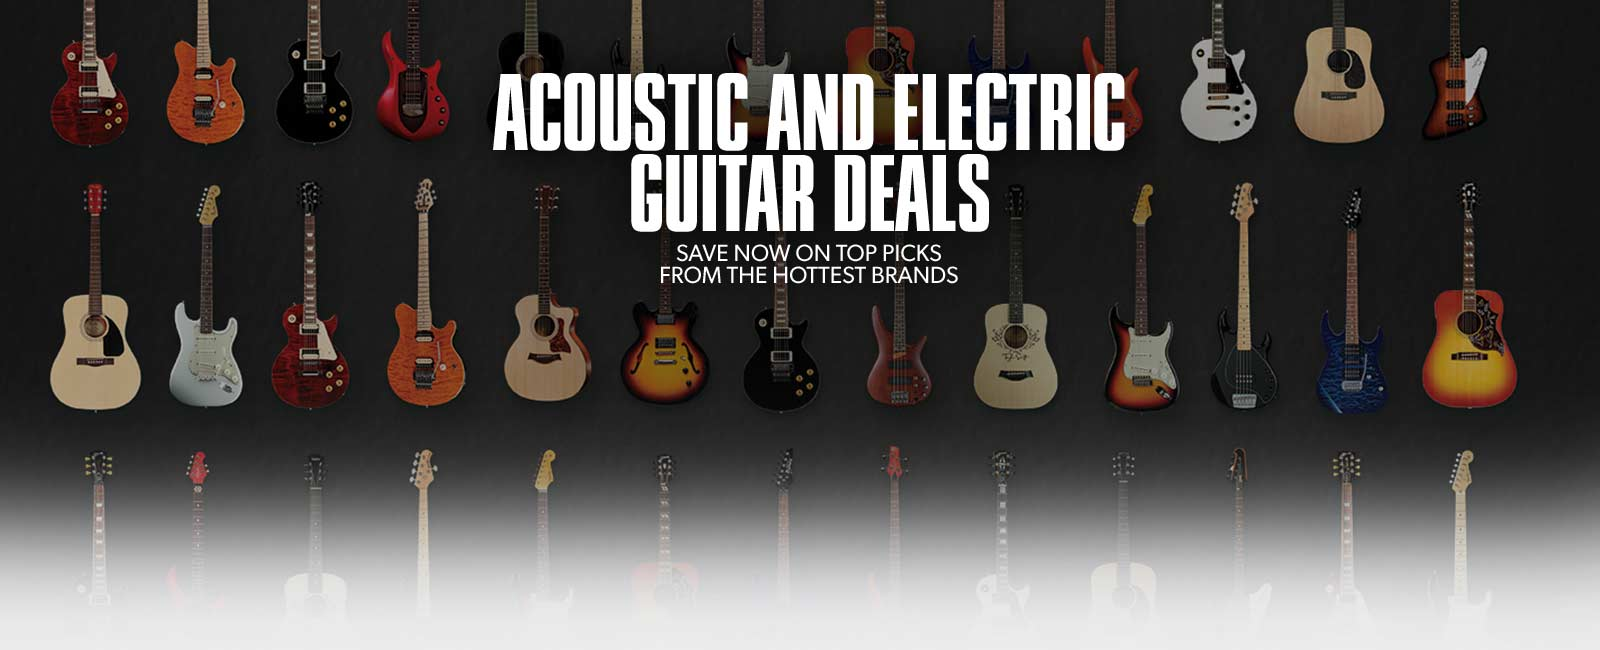 Electric & Acoustic Guitar Deals